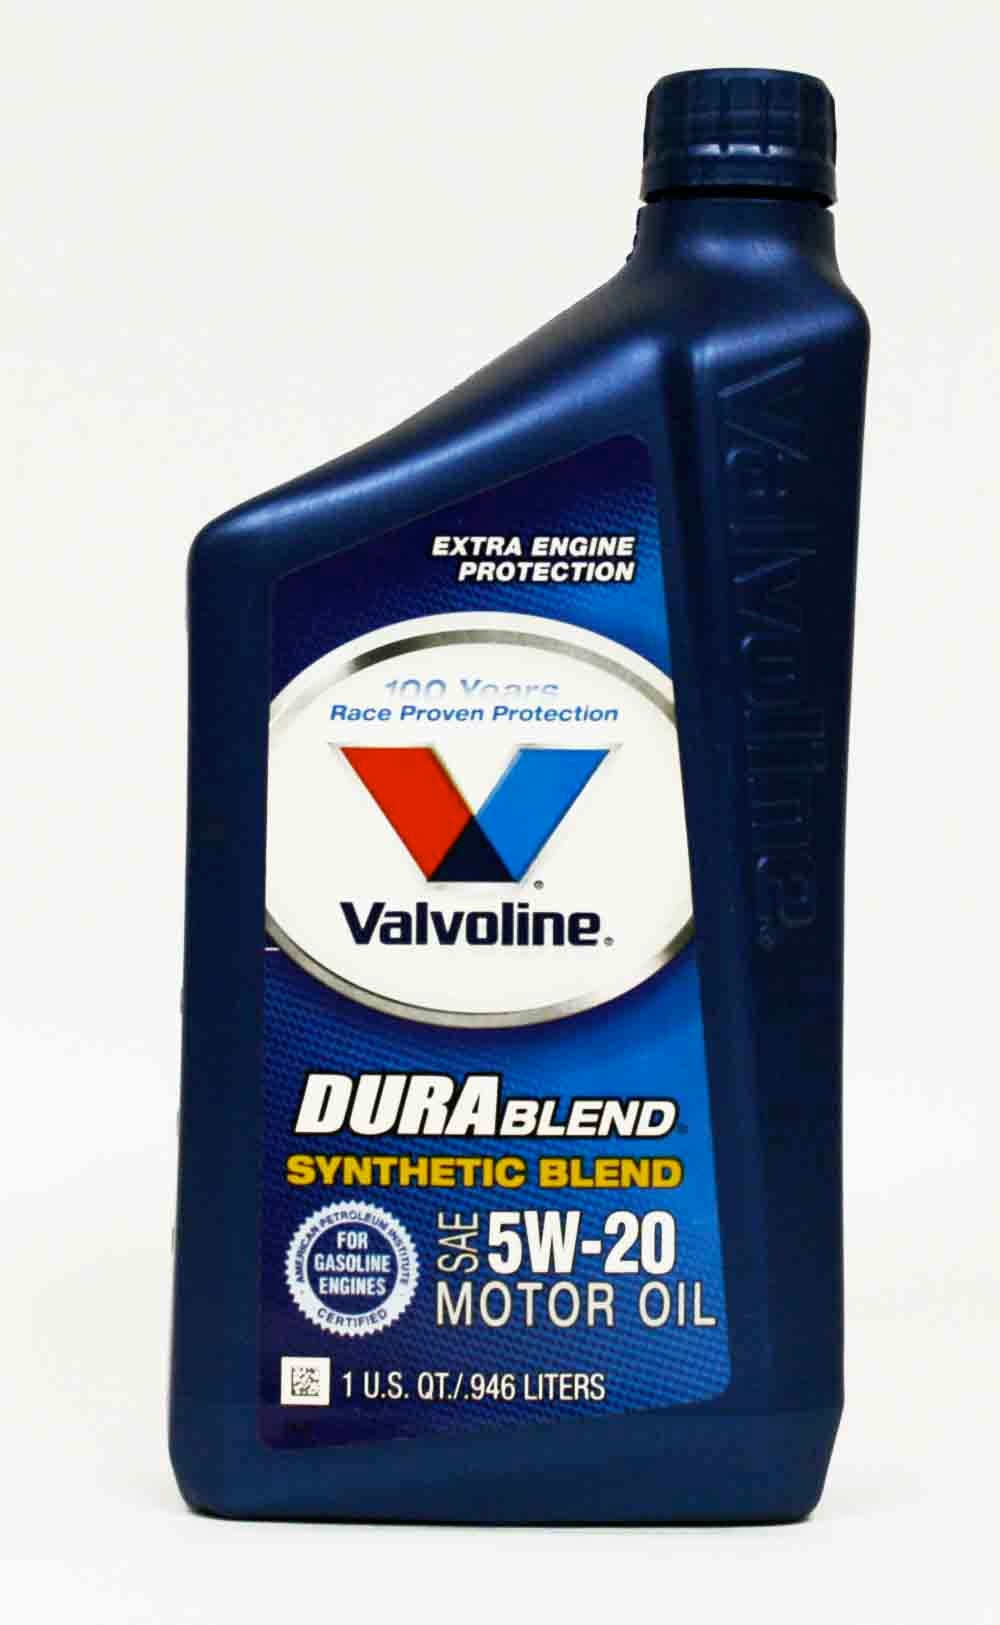 Description. Enhance the life of your engine with this Valvoline(TM) 5W Premium Conventional Motor Oil. This conventional motor oil helps to protect against sludge and deposit formations for a clean, efficient engine.